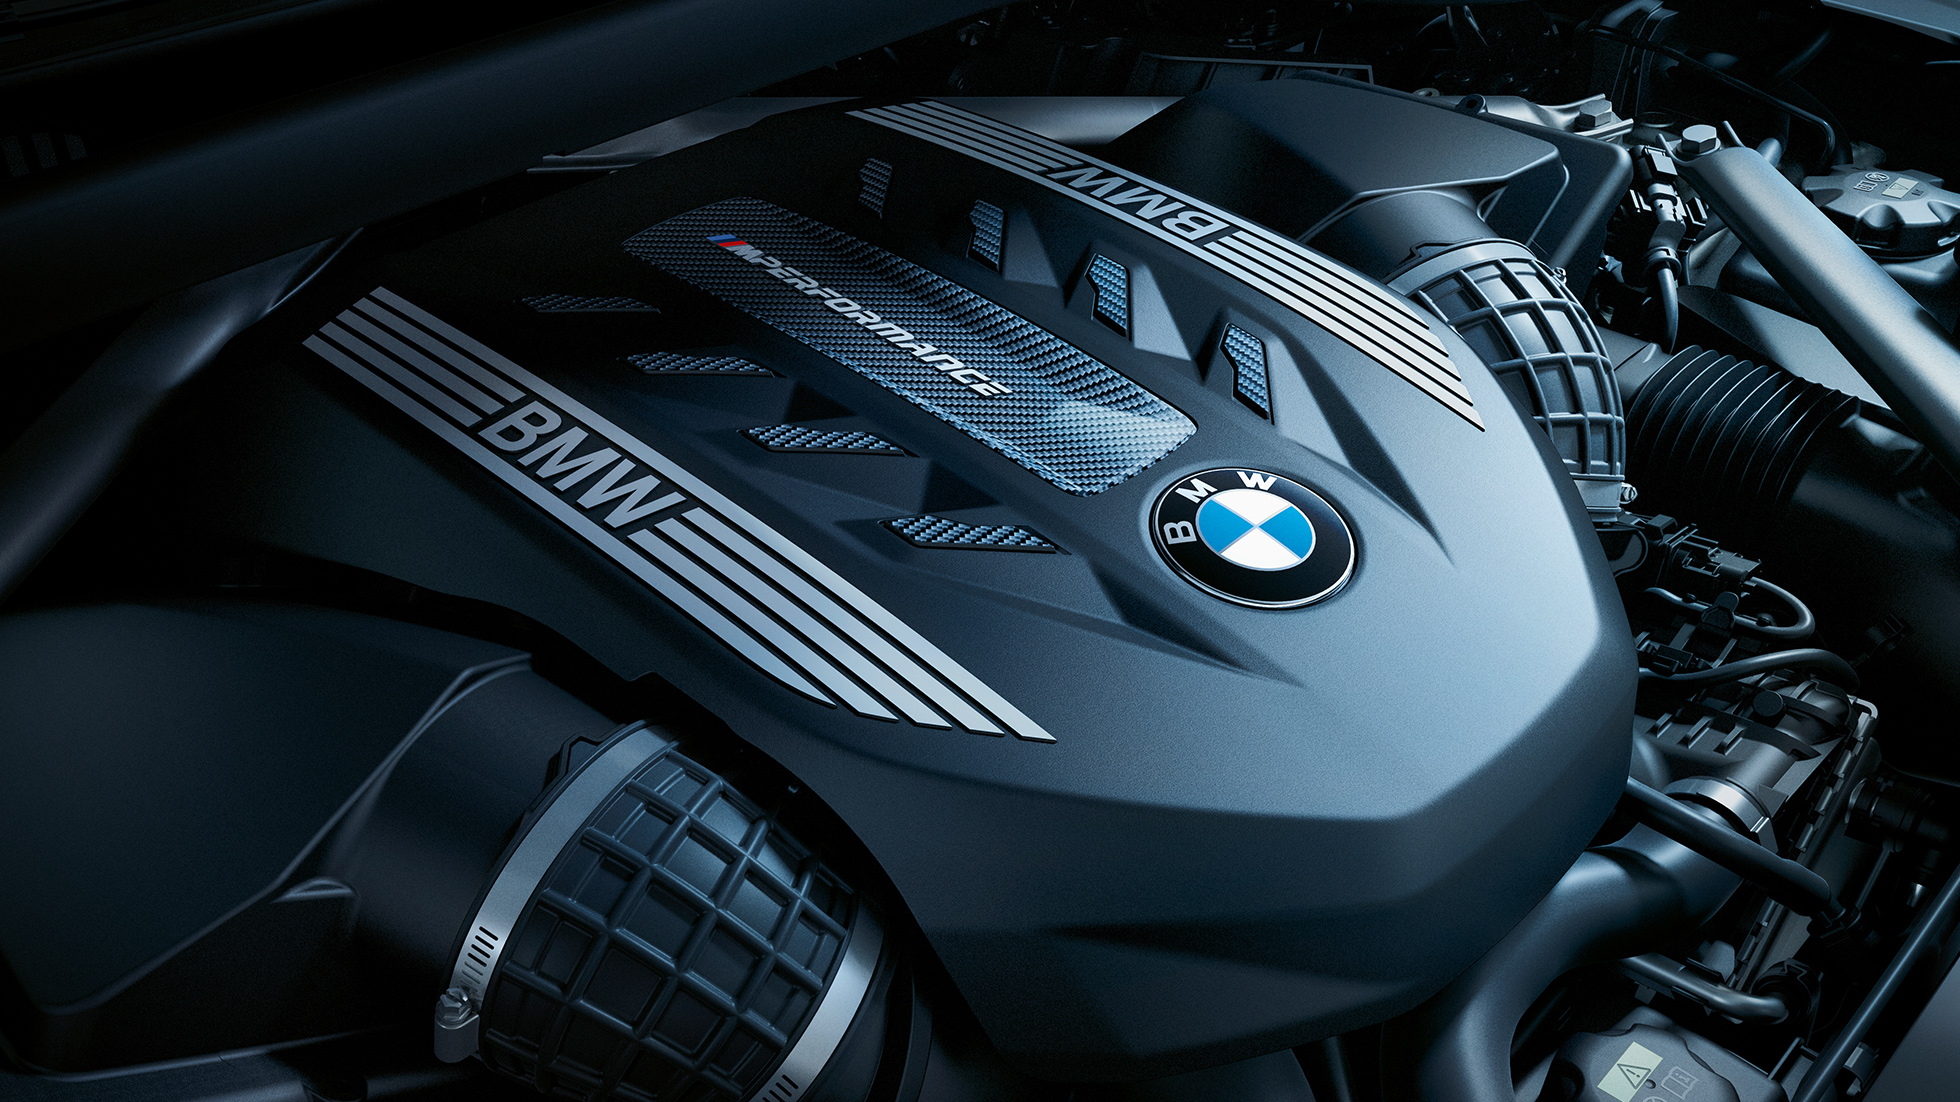 Close-up view of the BMW X6 engine.